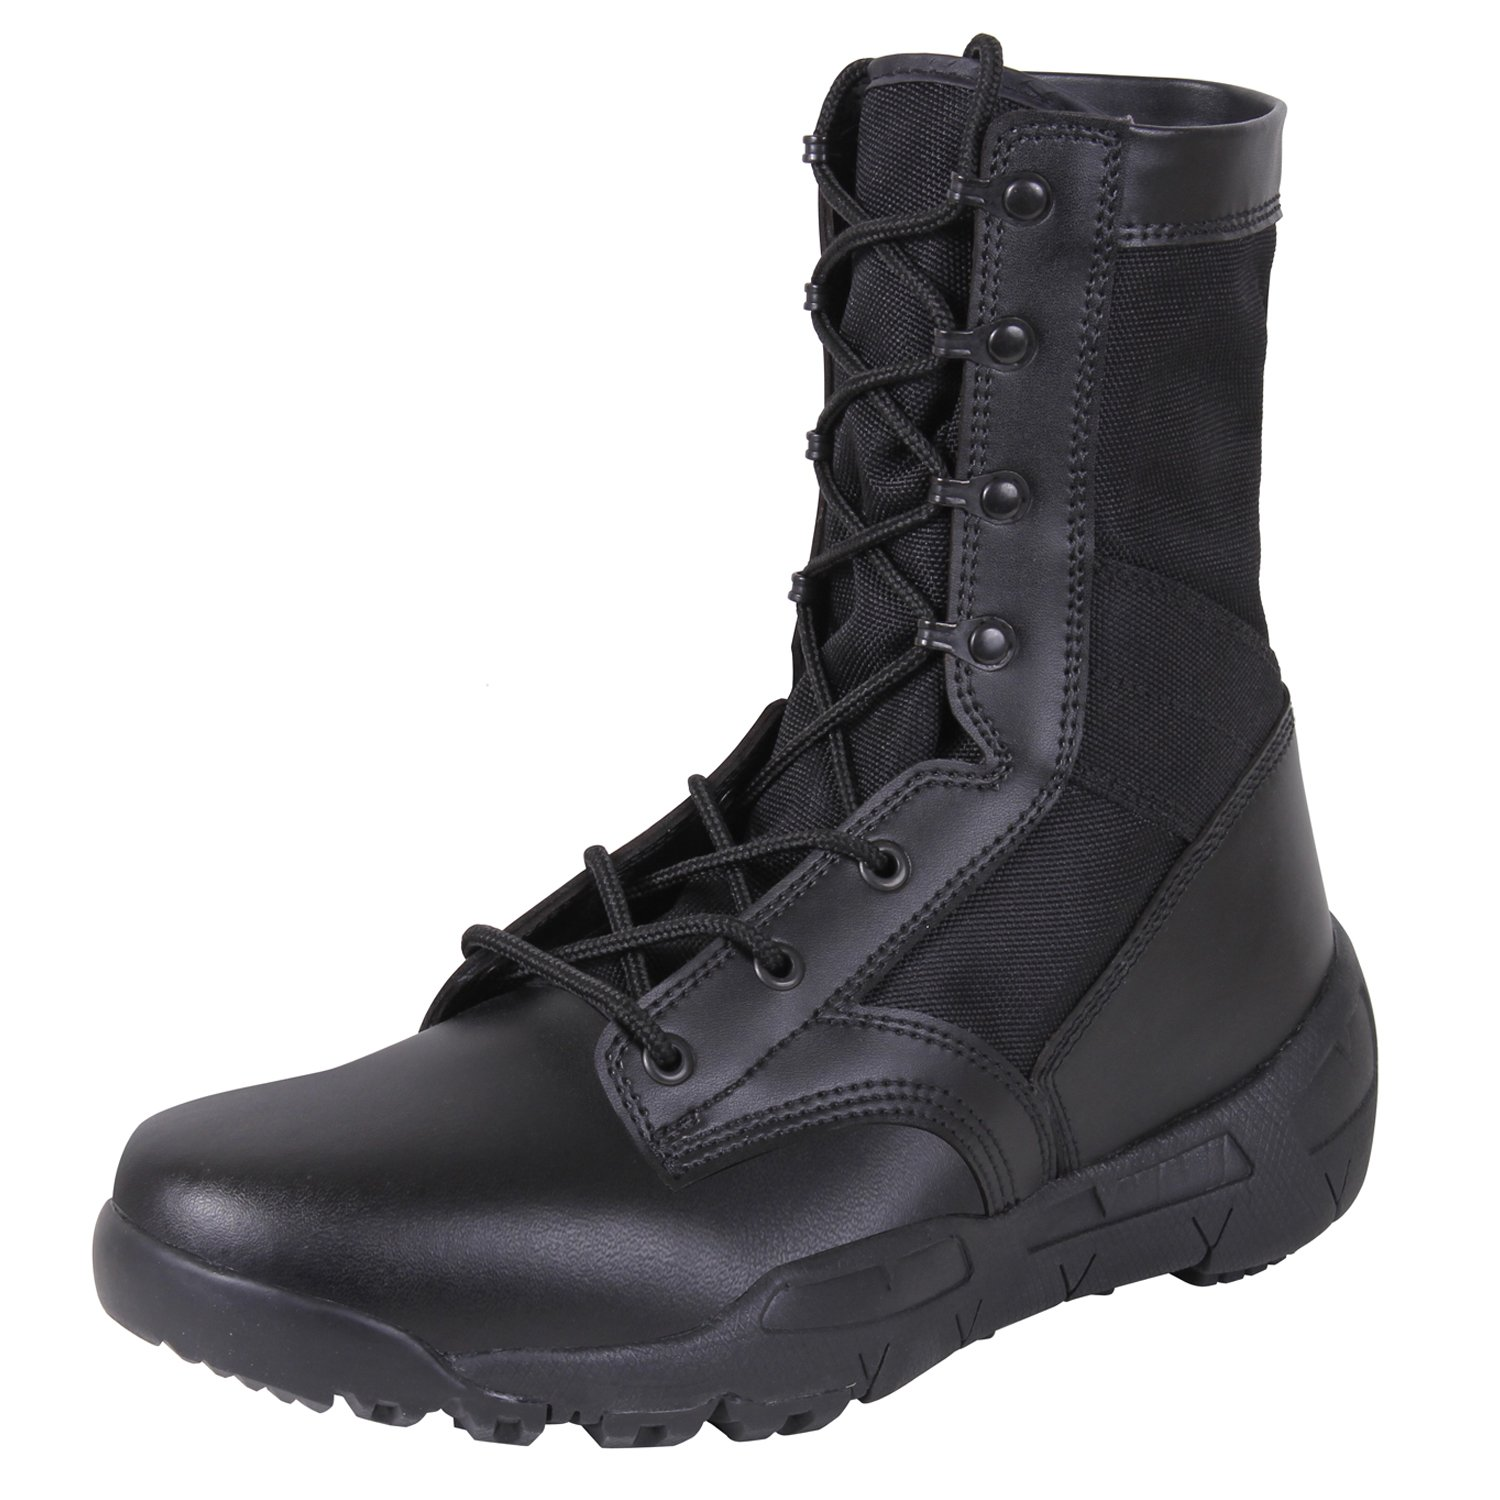 Rothco V-Max Lightweight Tactical Boot, Black, Size 12